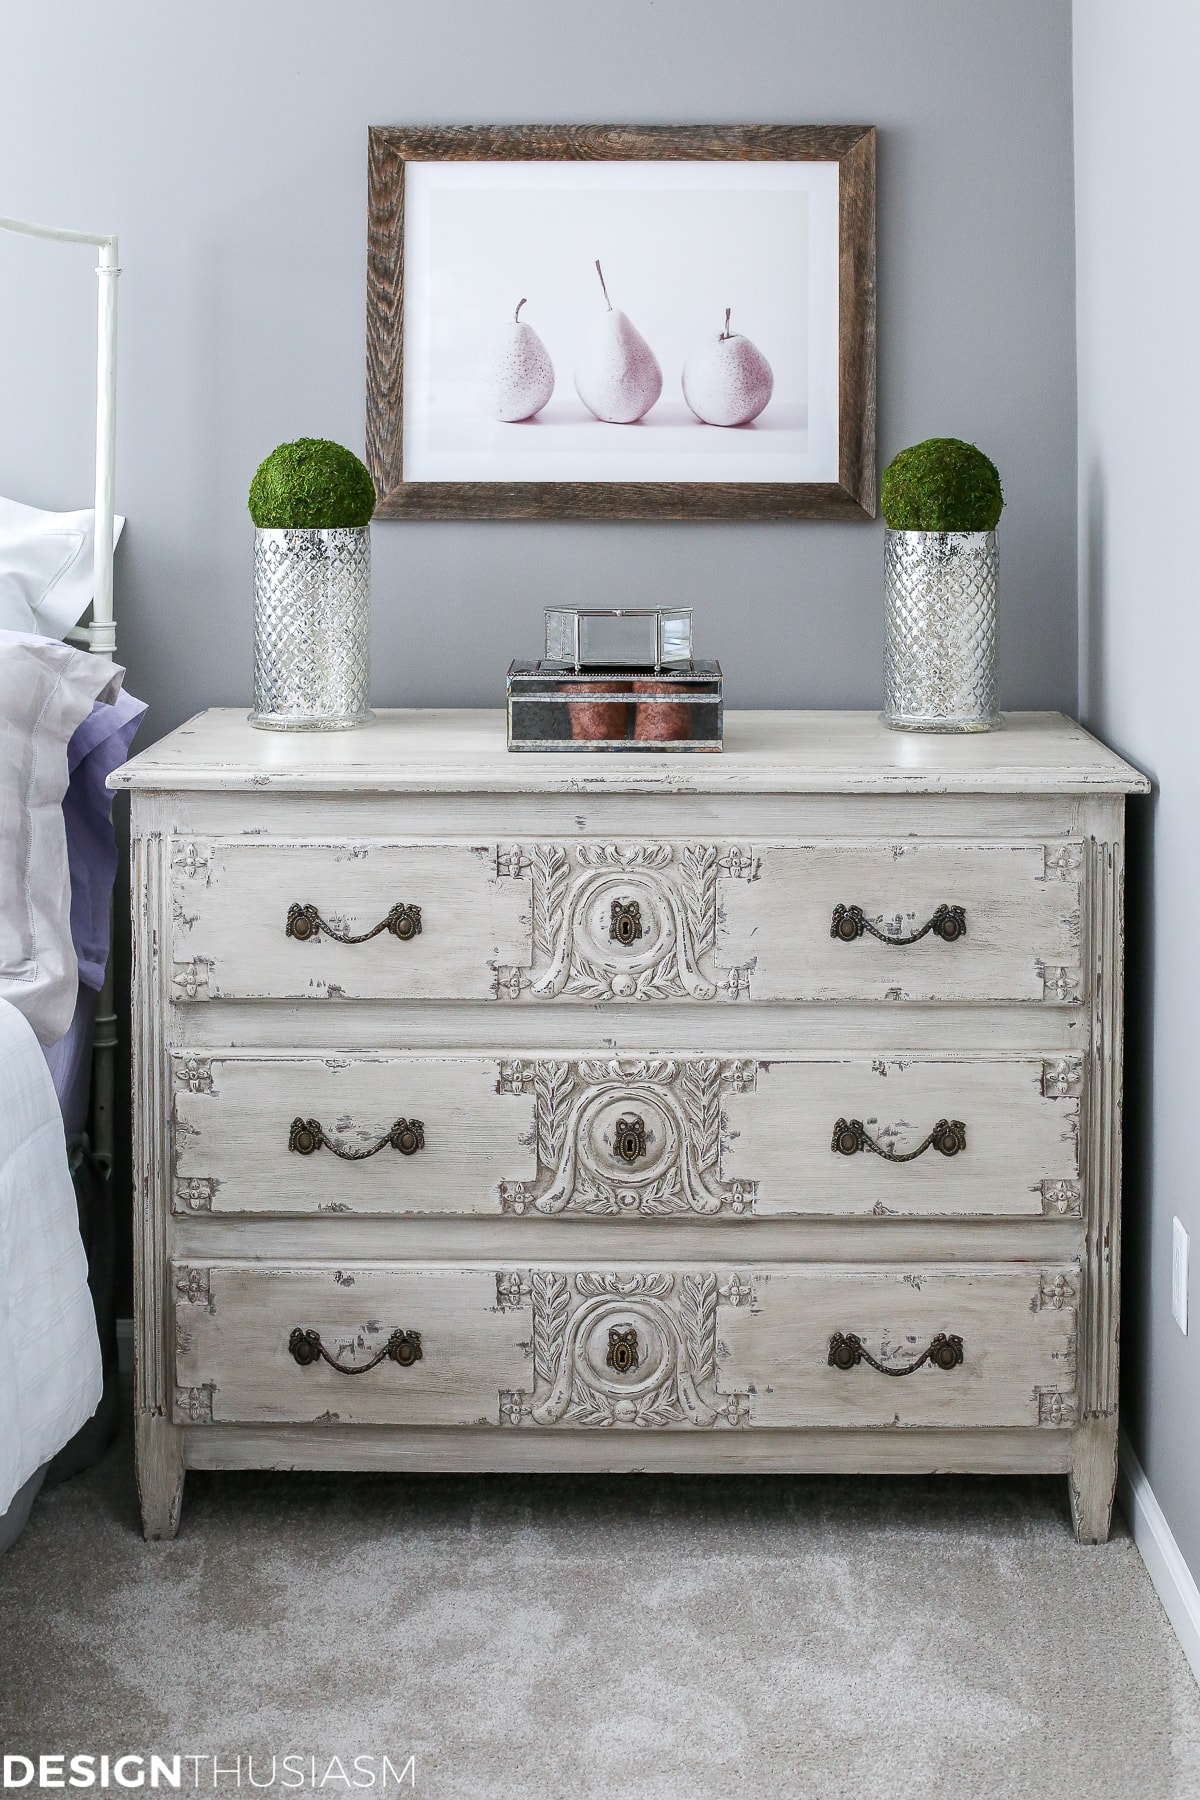 sets wood full nightstand hemnes black and frame drawers brown ikea buy beds el tone dark ridgeway cheap couches size table inexpensive set drawer bedroom queen dresser french chest furniture of bedside headboard